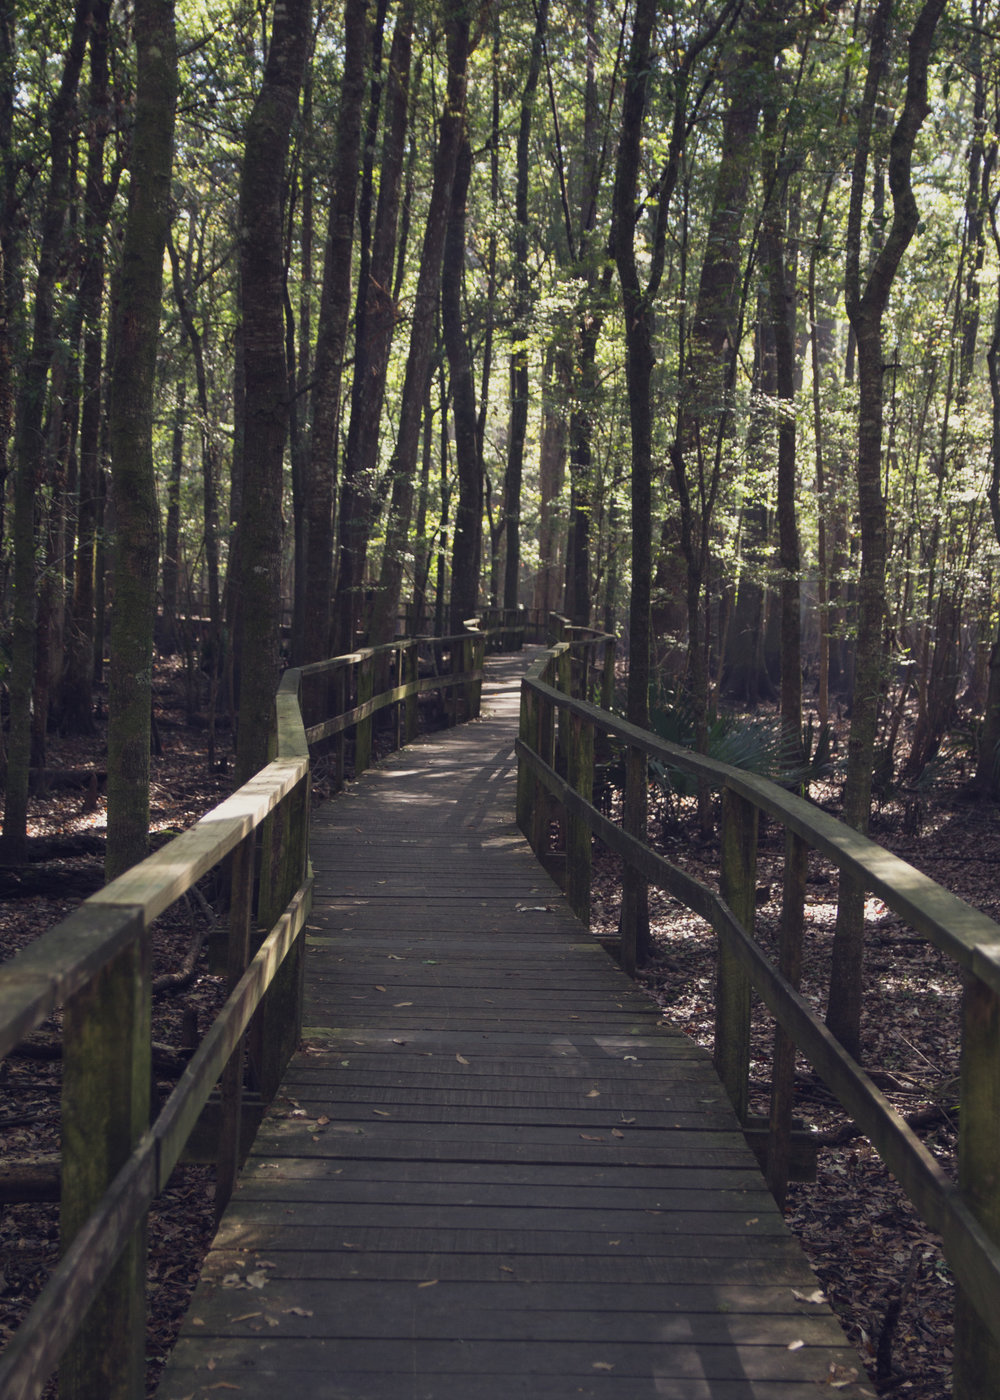 29 October 2013     Francis Beidler Forest    So today I was out wandering around the back roads of South Carolina and stumbled across this park/forest. The owners built a 5k long boardwalk throughout the swamp. This forest hosts the 2nd oldest cypress tree in the world. If you ever find yourself in South Carolina this place is a gem.